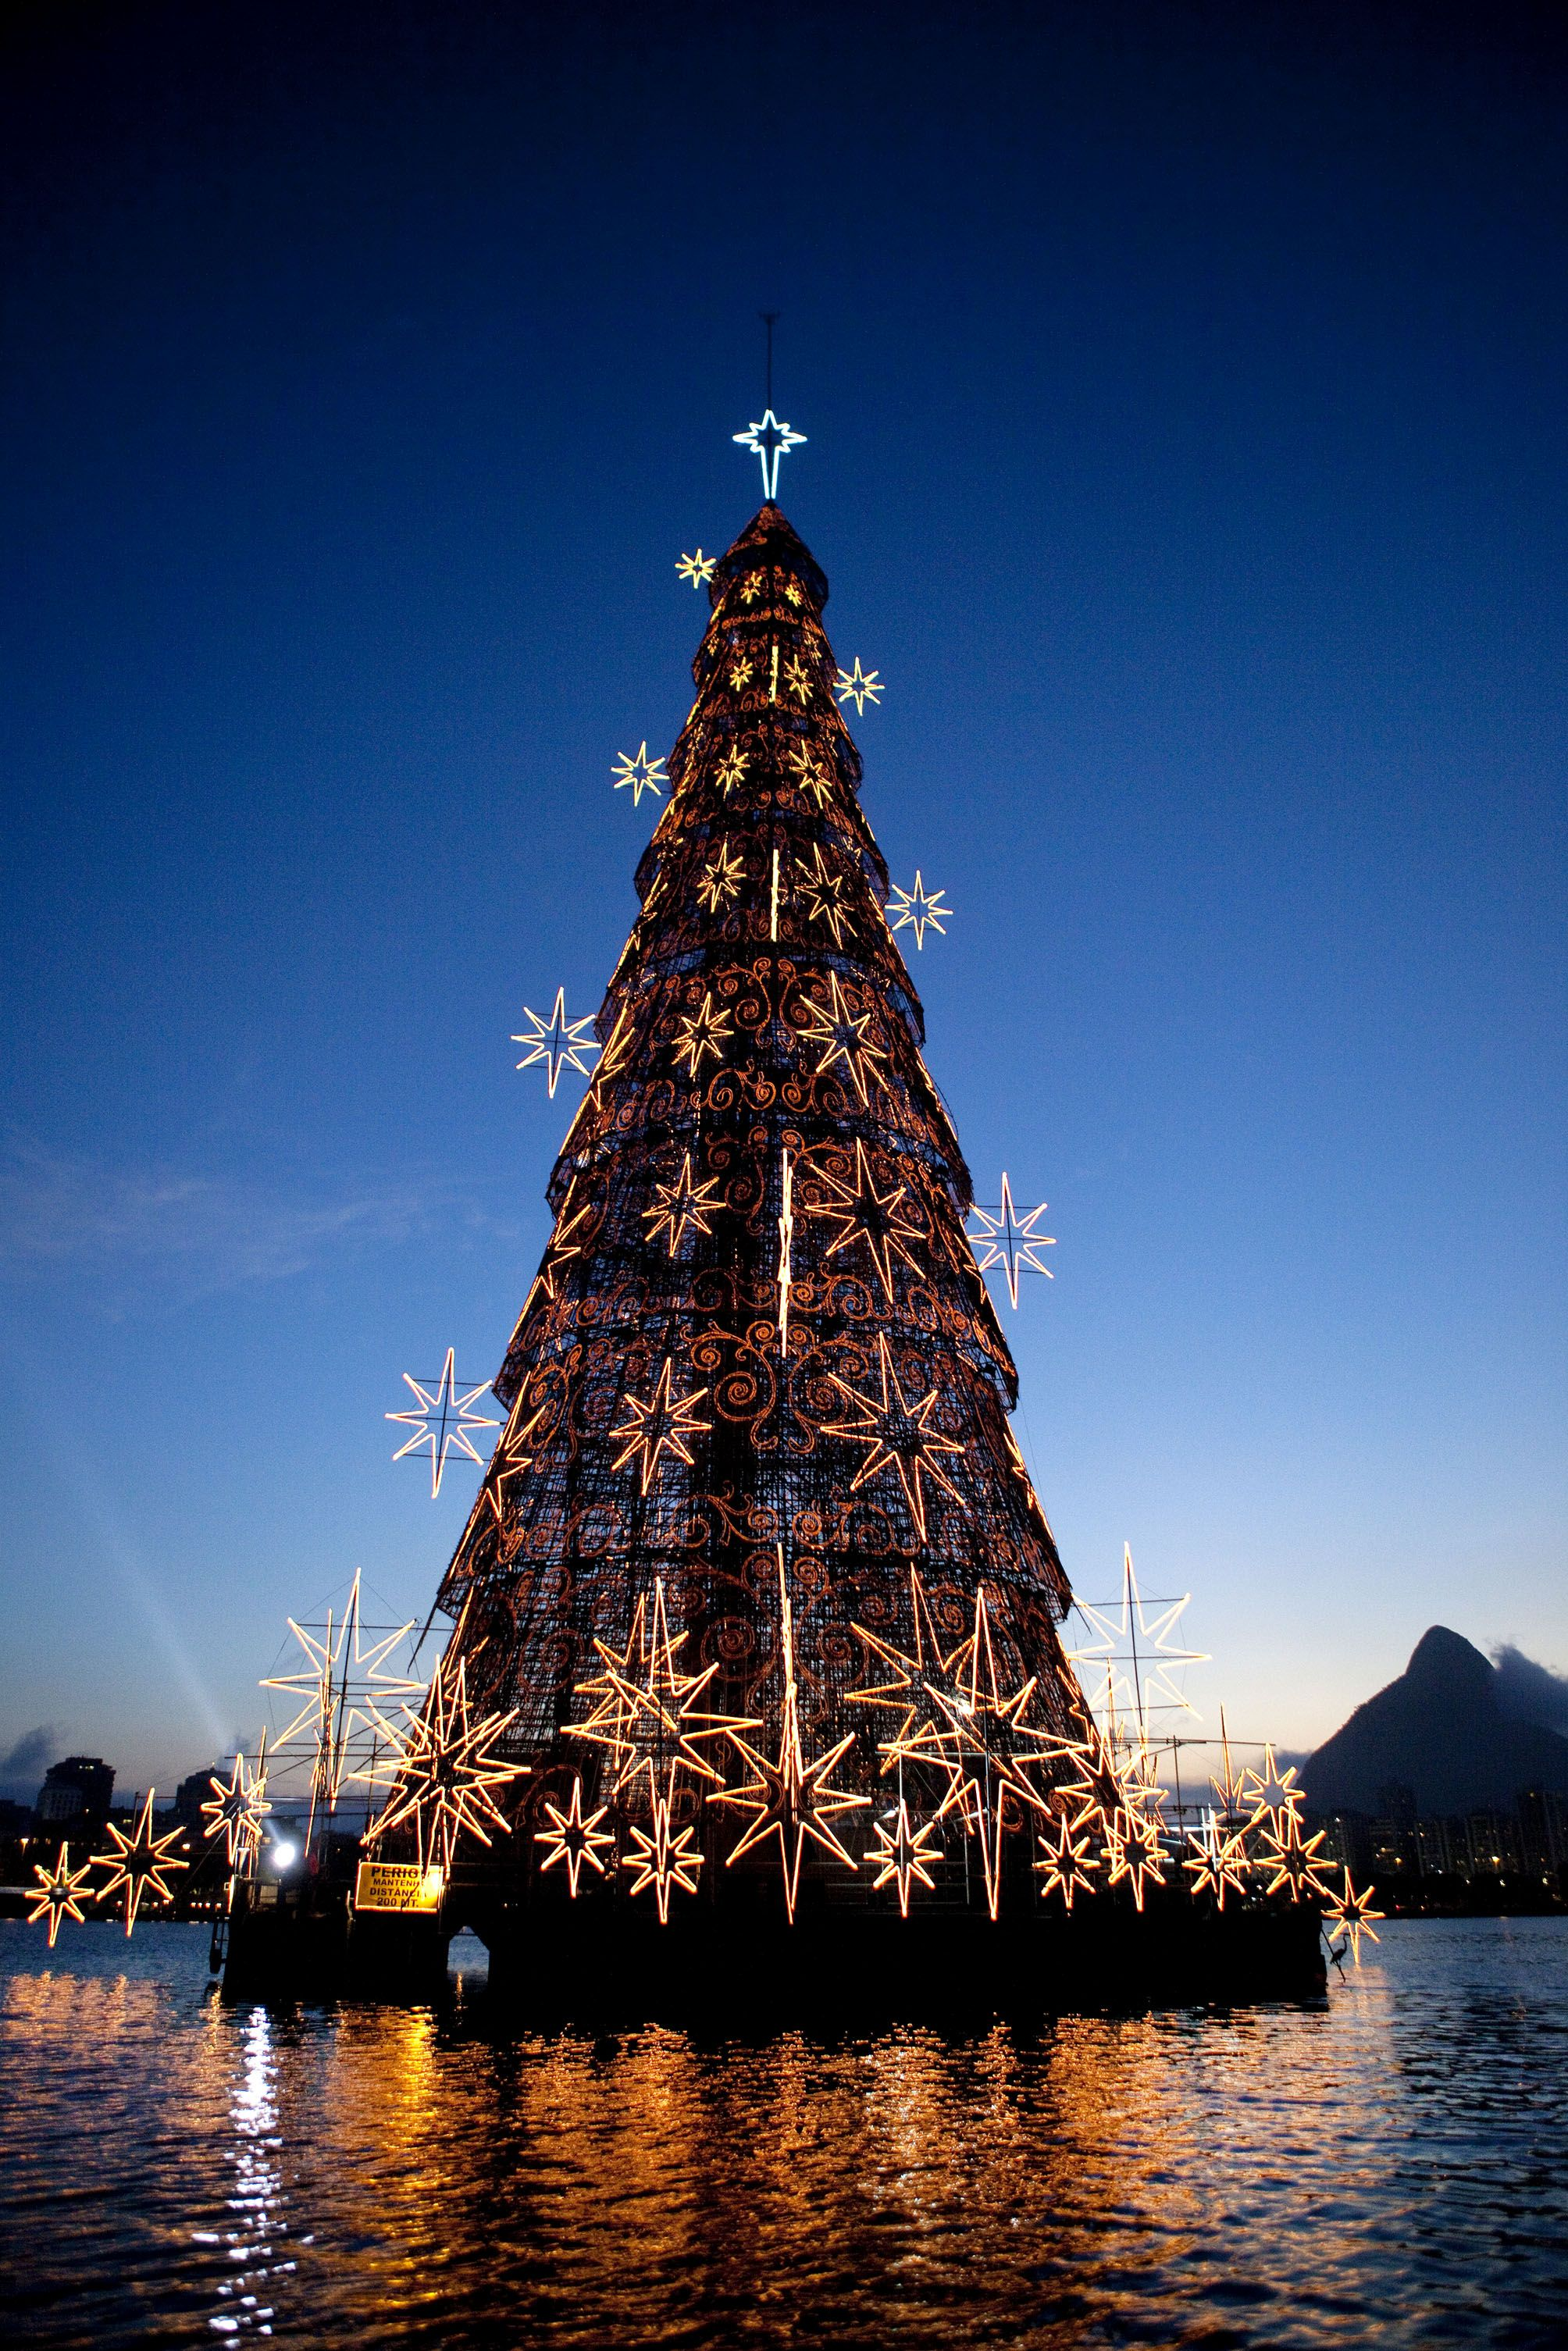 worlds largest floating christmas tree rio de janeiro brazil littlepassports 12daysofchristmas - Largest Christmas Tree